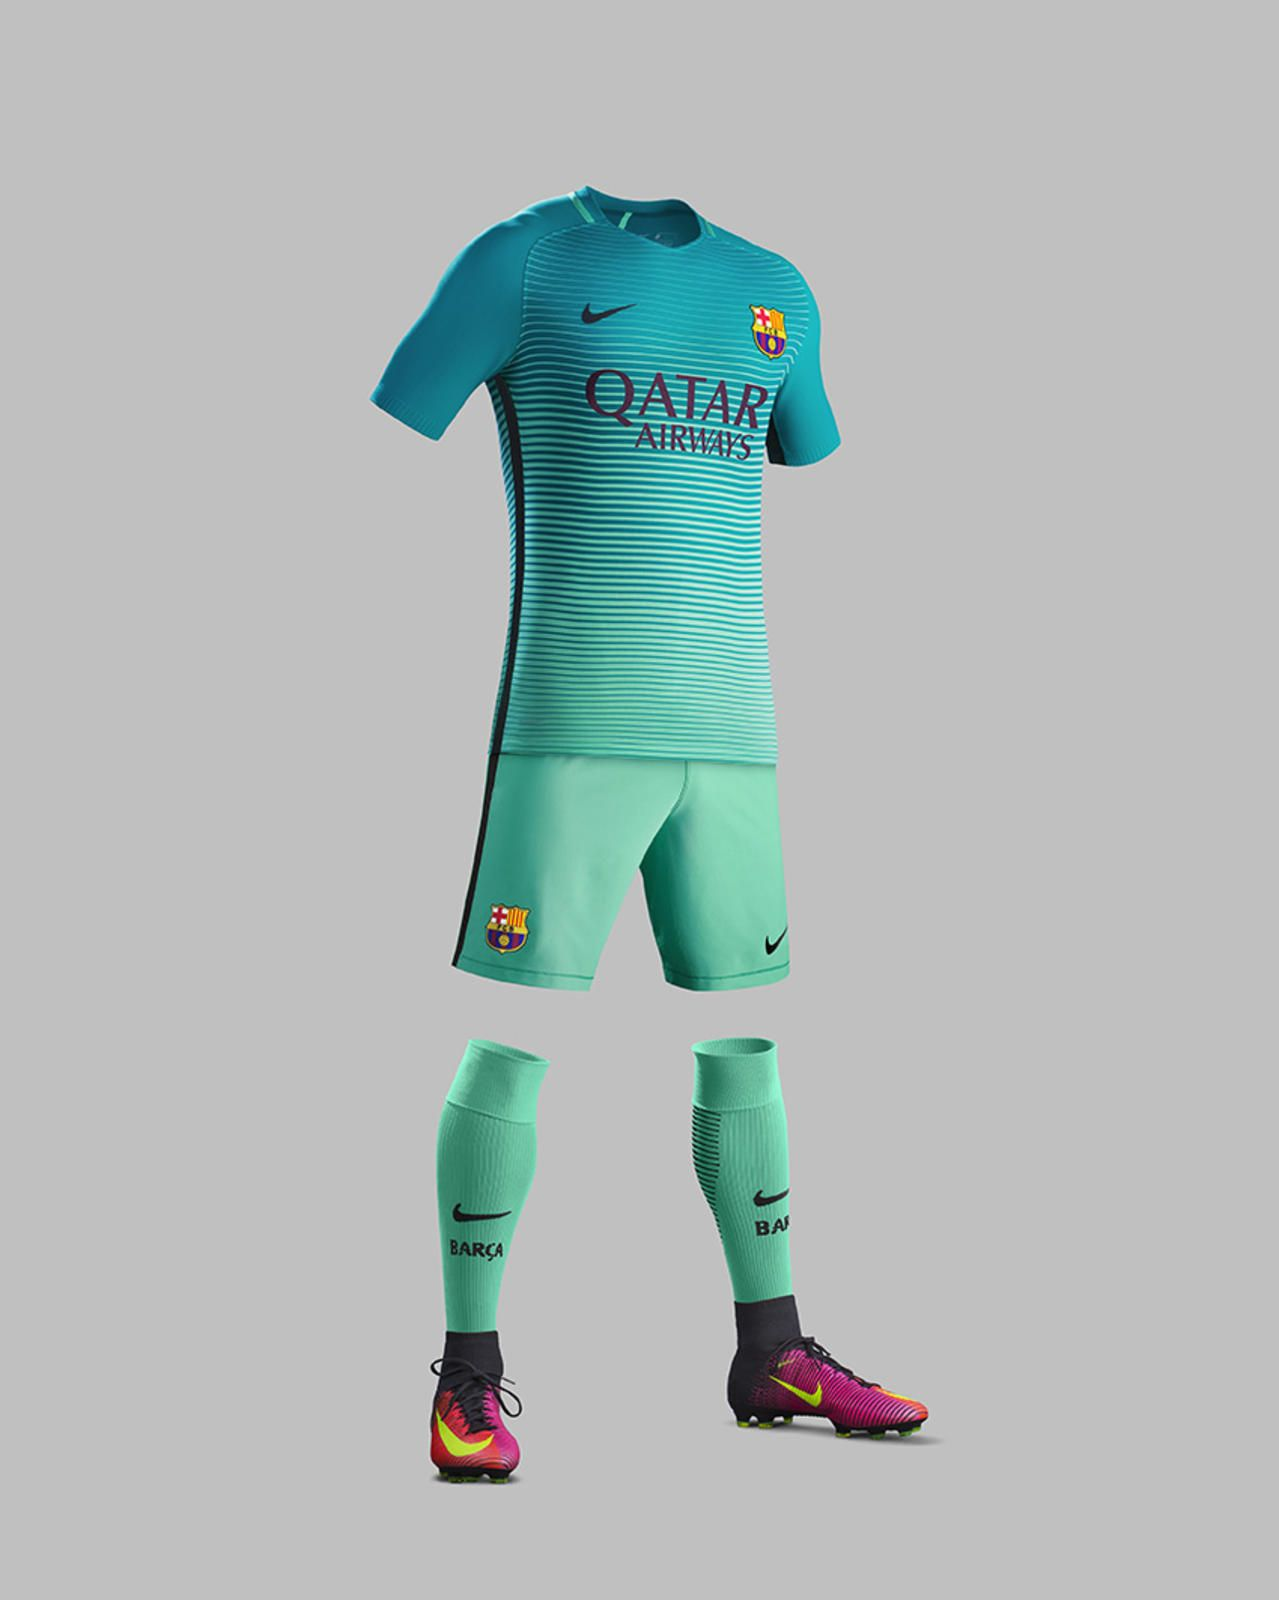 Terceira camisa do Barcelona 2016-2017 Nike kit cbe8a4e72